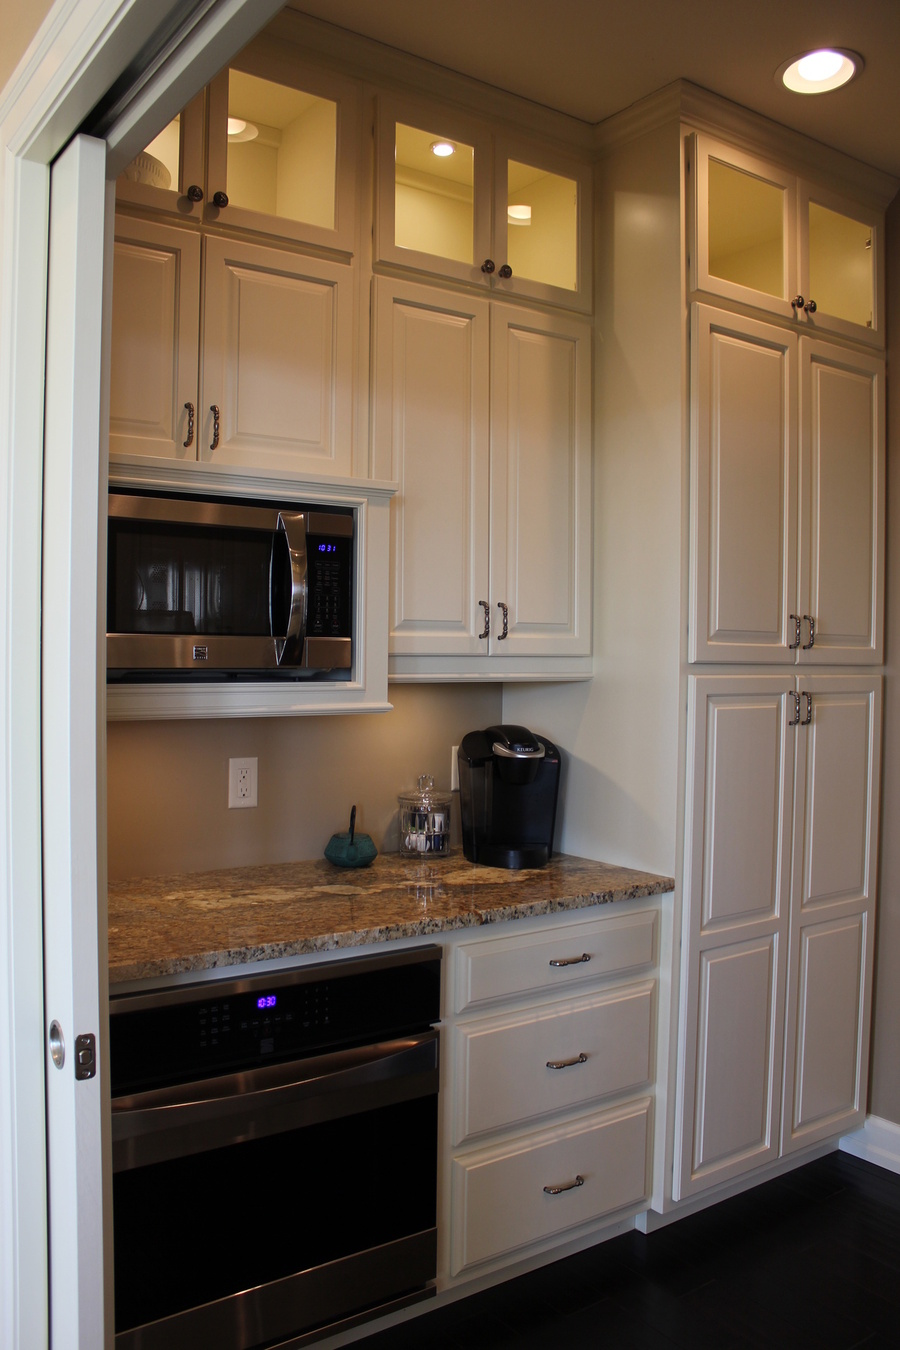 Full Set of White Painted Birch Kitchen Cabinets and Granite Counters